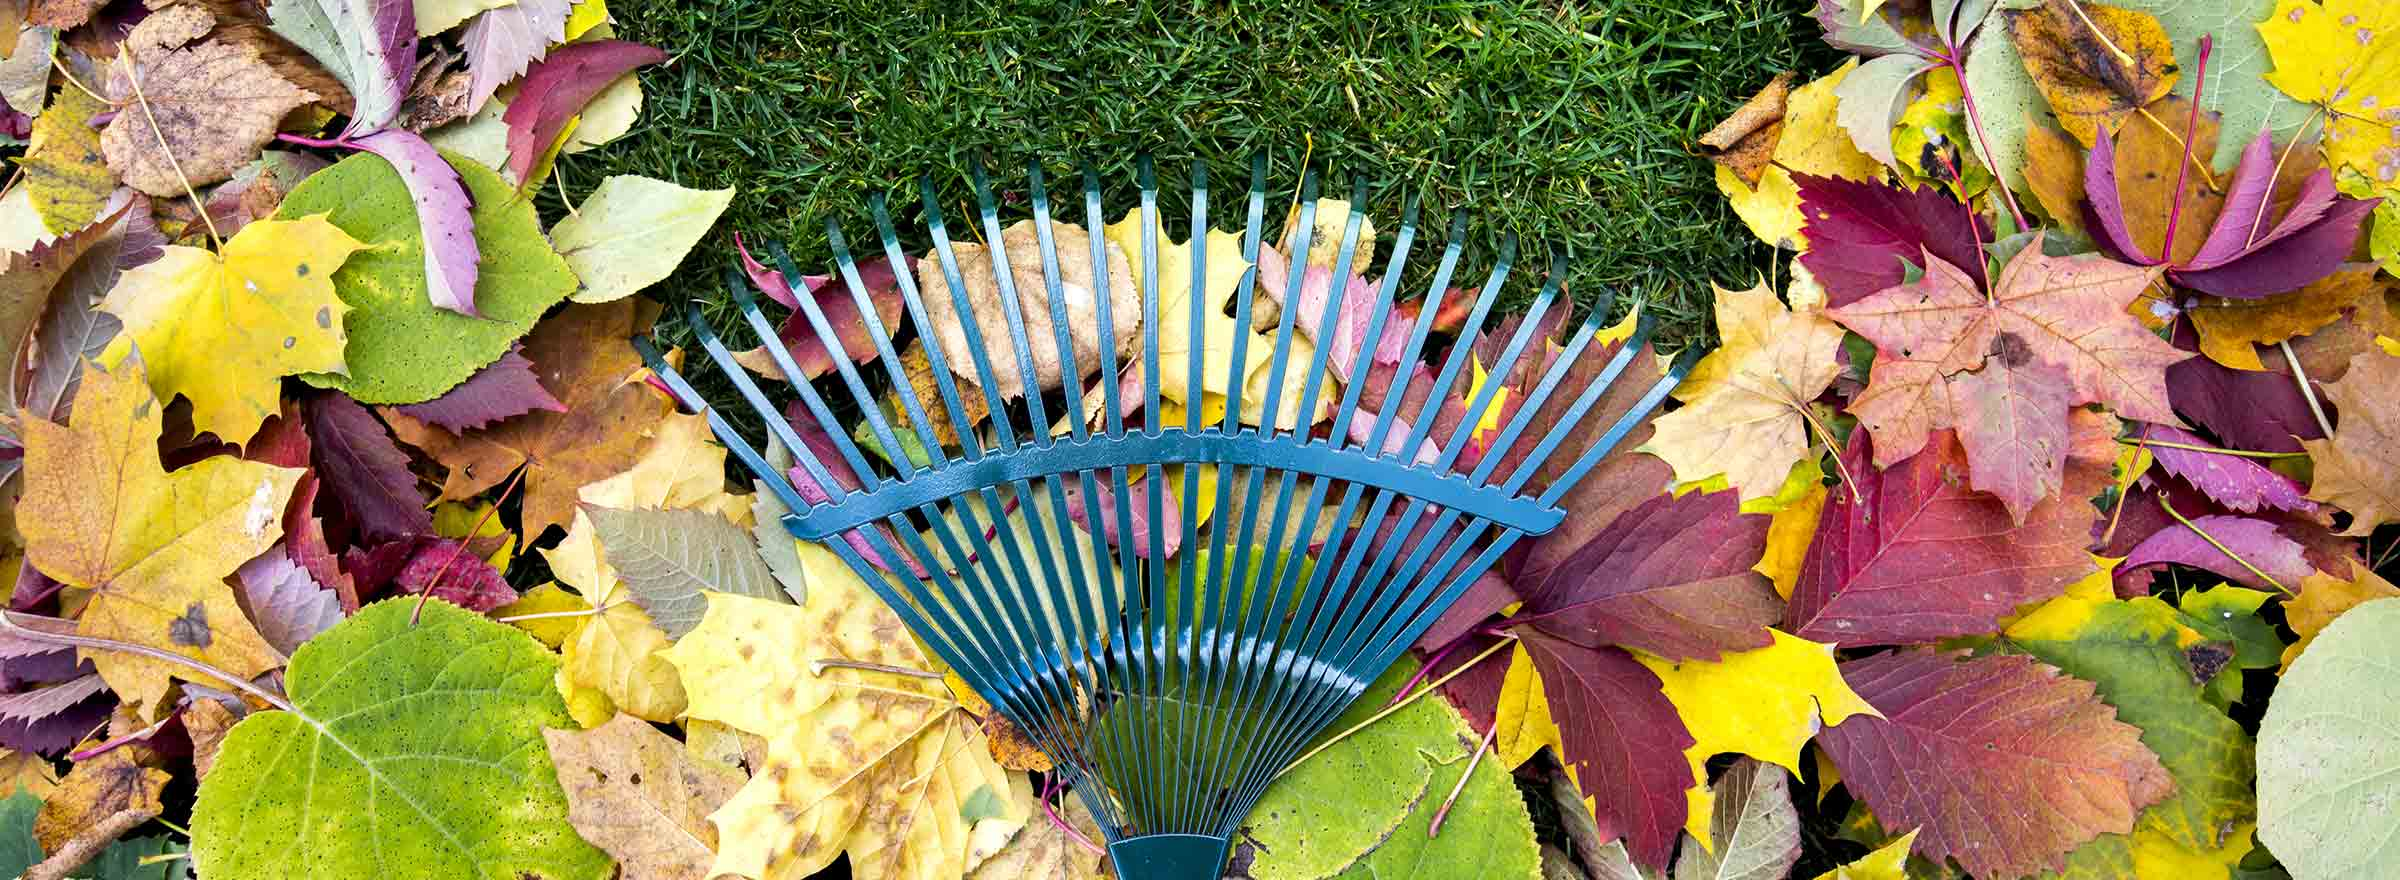 a rake gathering up autumn leaves on the ground, symbolizing how nonprofits can readapt to survive the expected decrease in donations